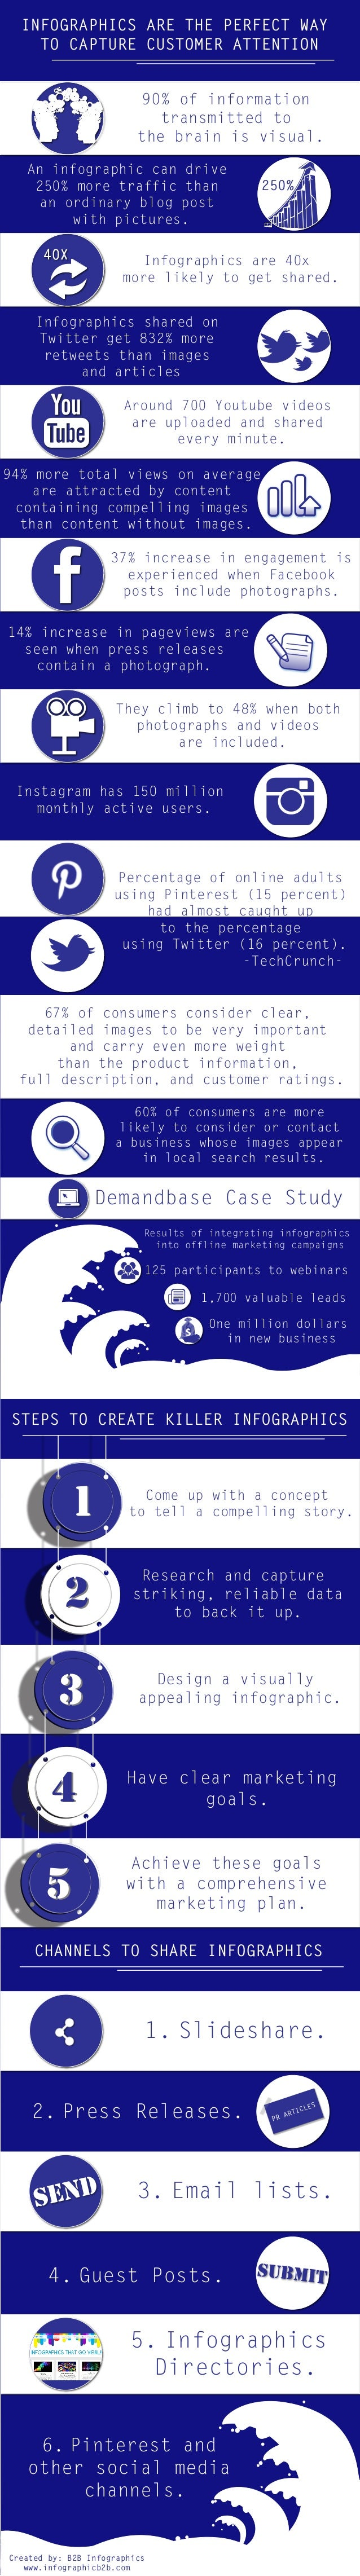 INFOGRAPHICS ARE THE PERFECT WAY TO CAPTURE CUSTOMER ATTENTION STEPS TO CREATE KILLER INFOGRAPHICS CHANNELS TO SHARE INFOG...